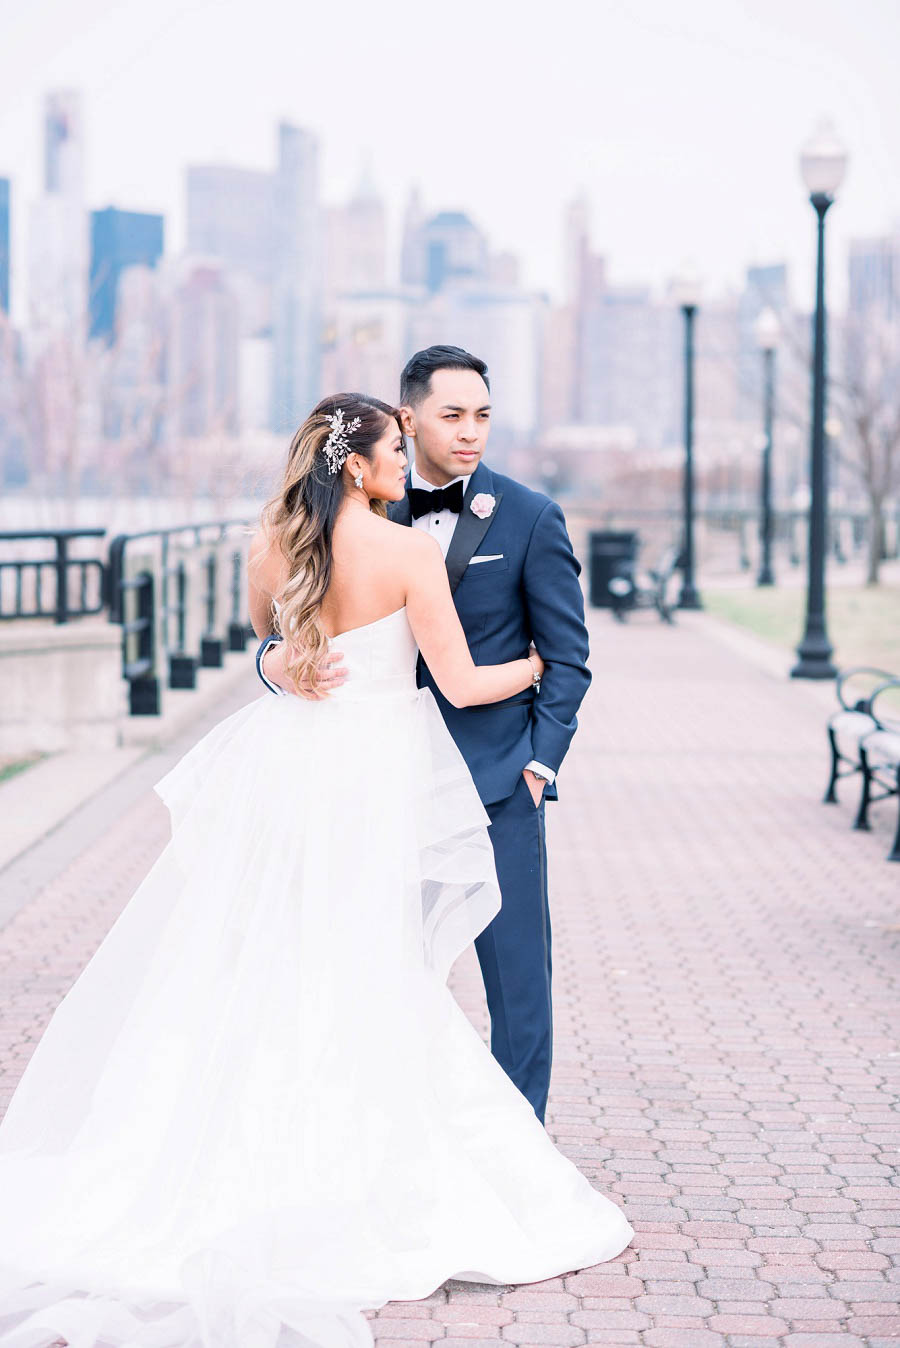 Liberty House Wedding - Jersey City - NJ Wedding Photographer - Myra Roman Photography-53.jpg